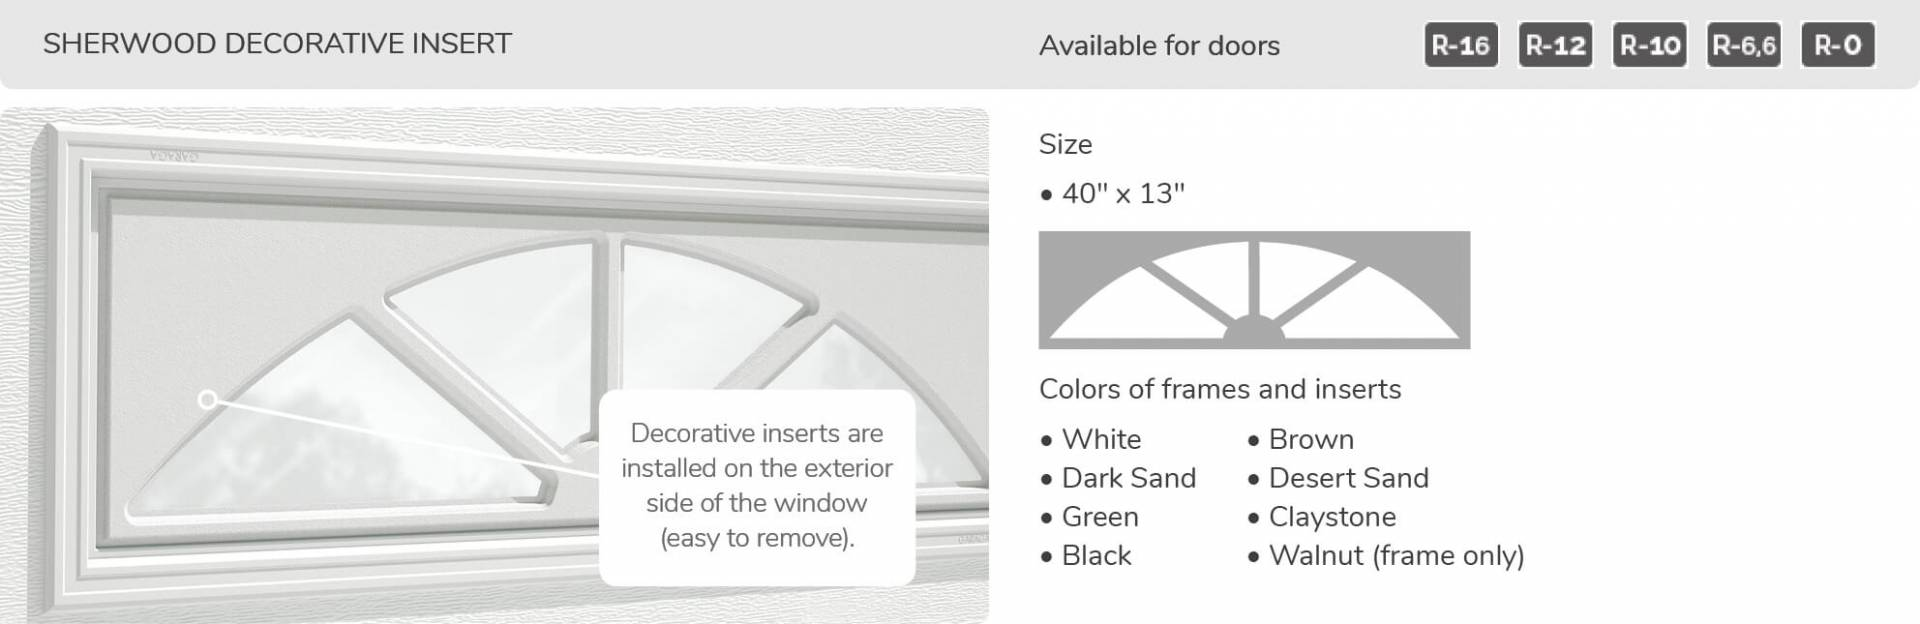 Sherwood Decorative Insert, 40' x 13', available for doors R-16, R-12, R-10, R-6,6 and R-0